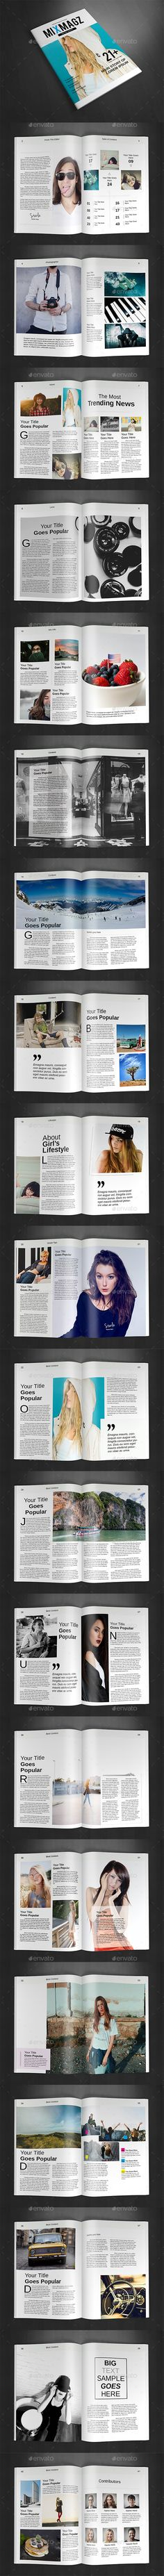 A4 Magazine Template InDesign INDD